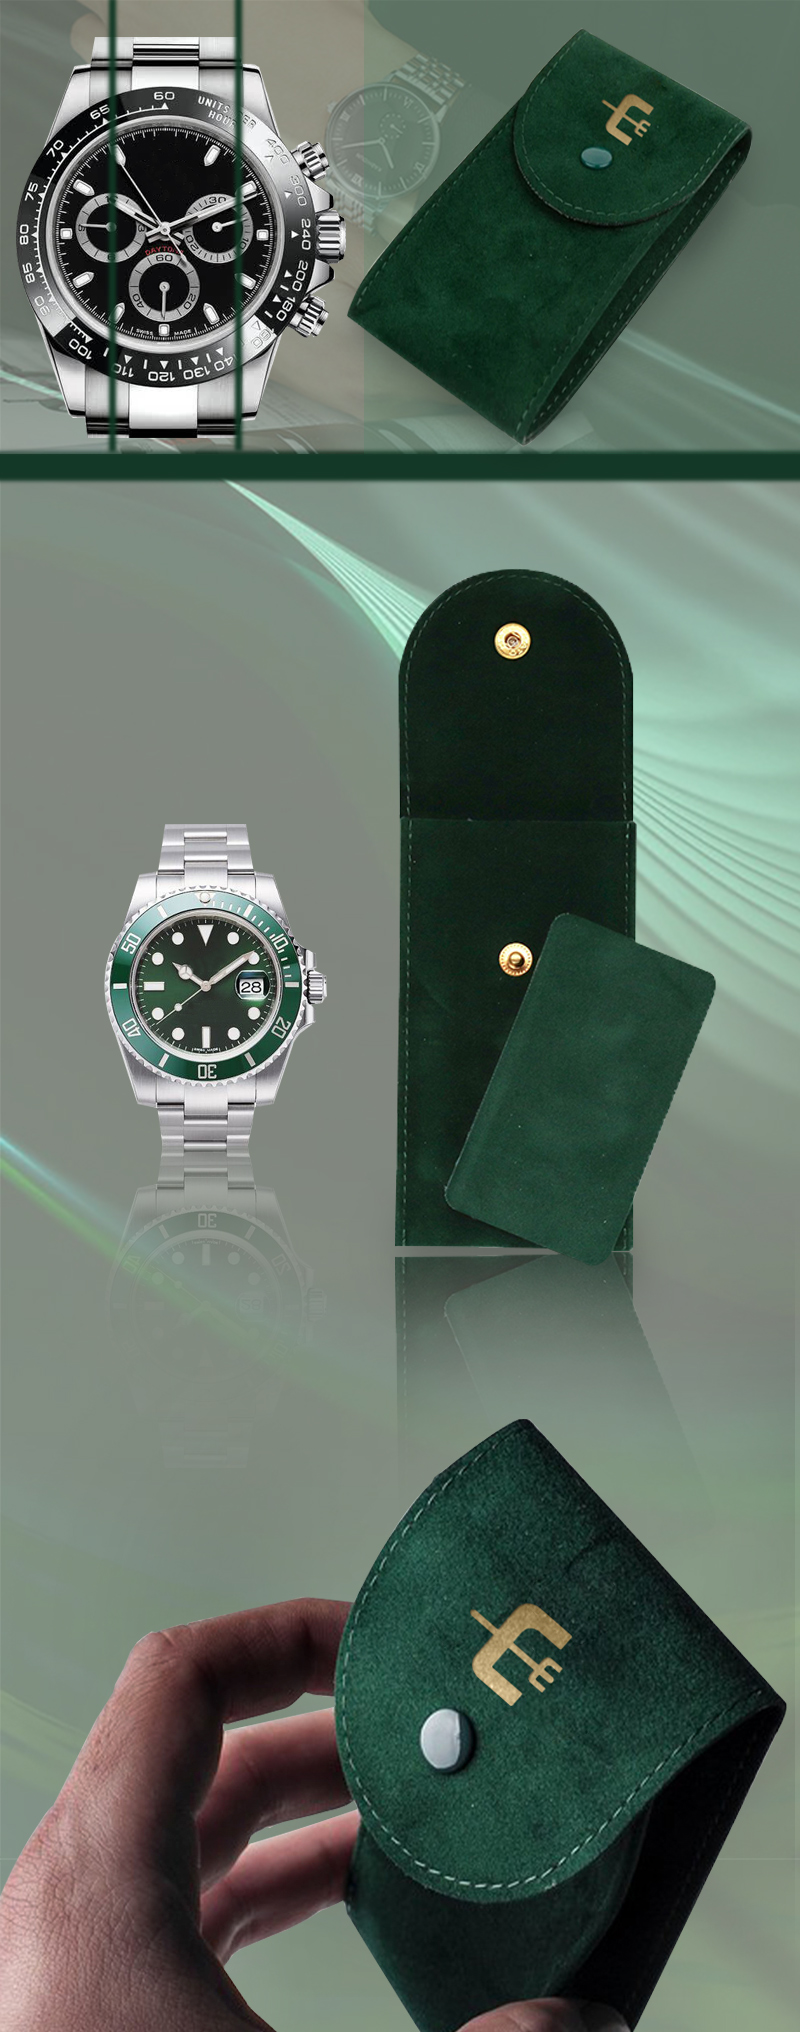 Customized Rolex pouches